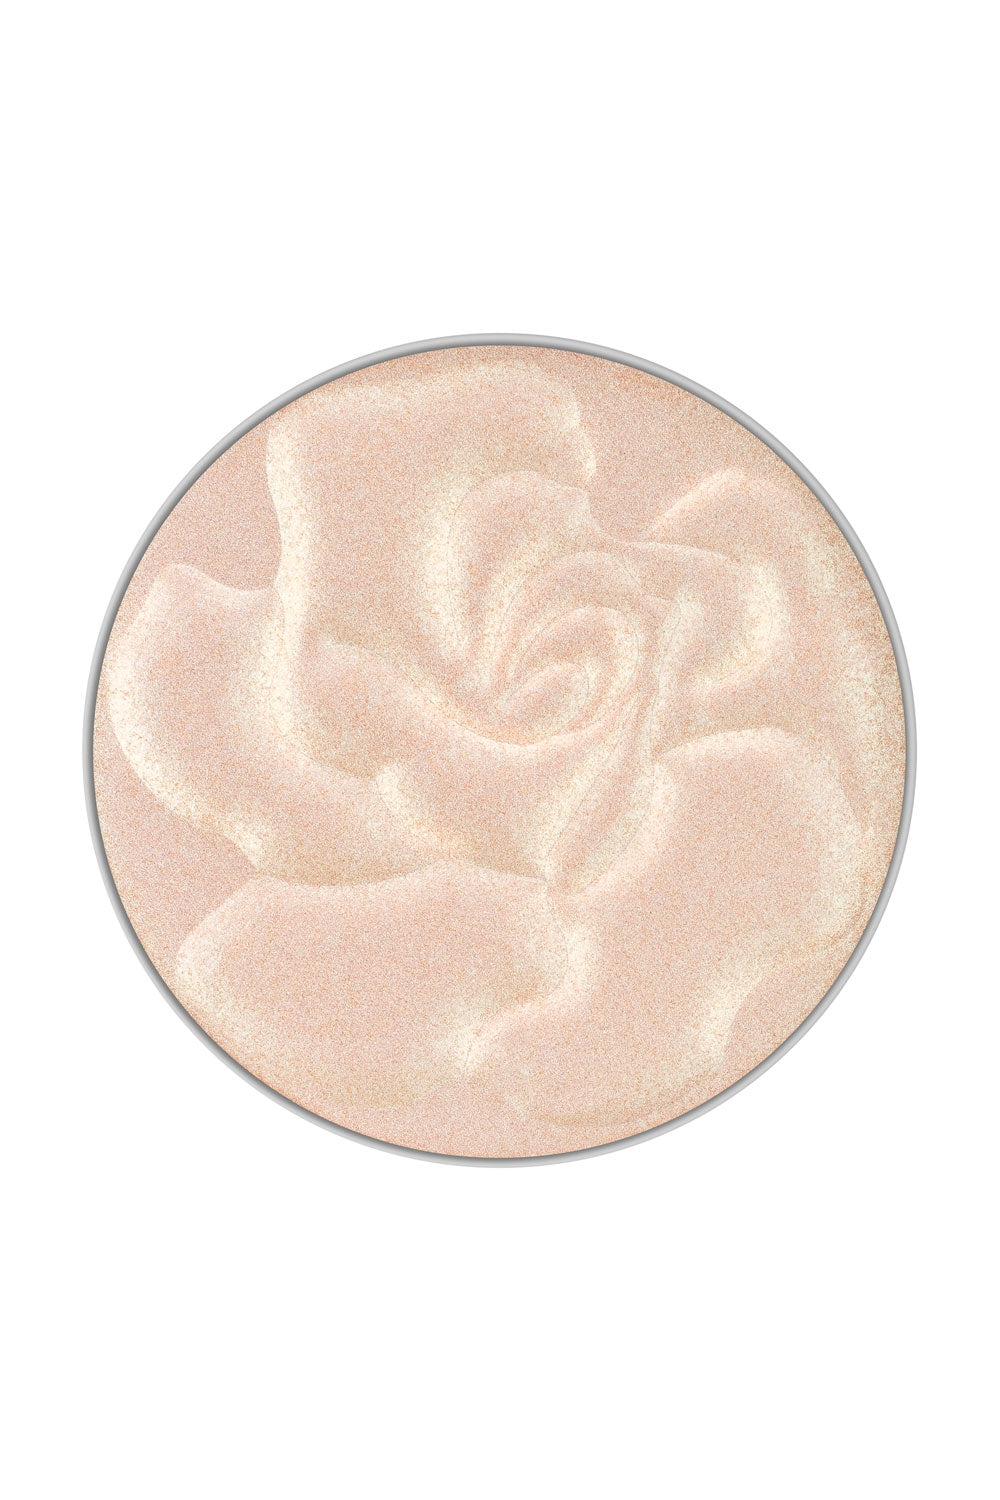 Type 1 Bronzer Pan - Angelic Peach